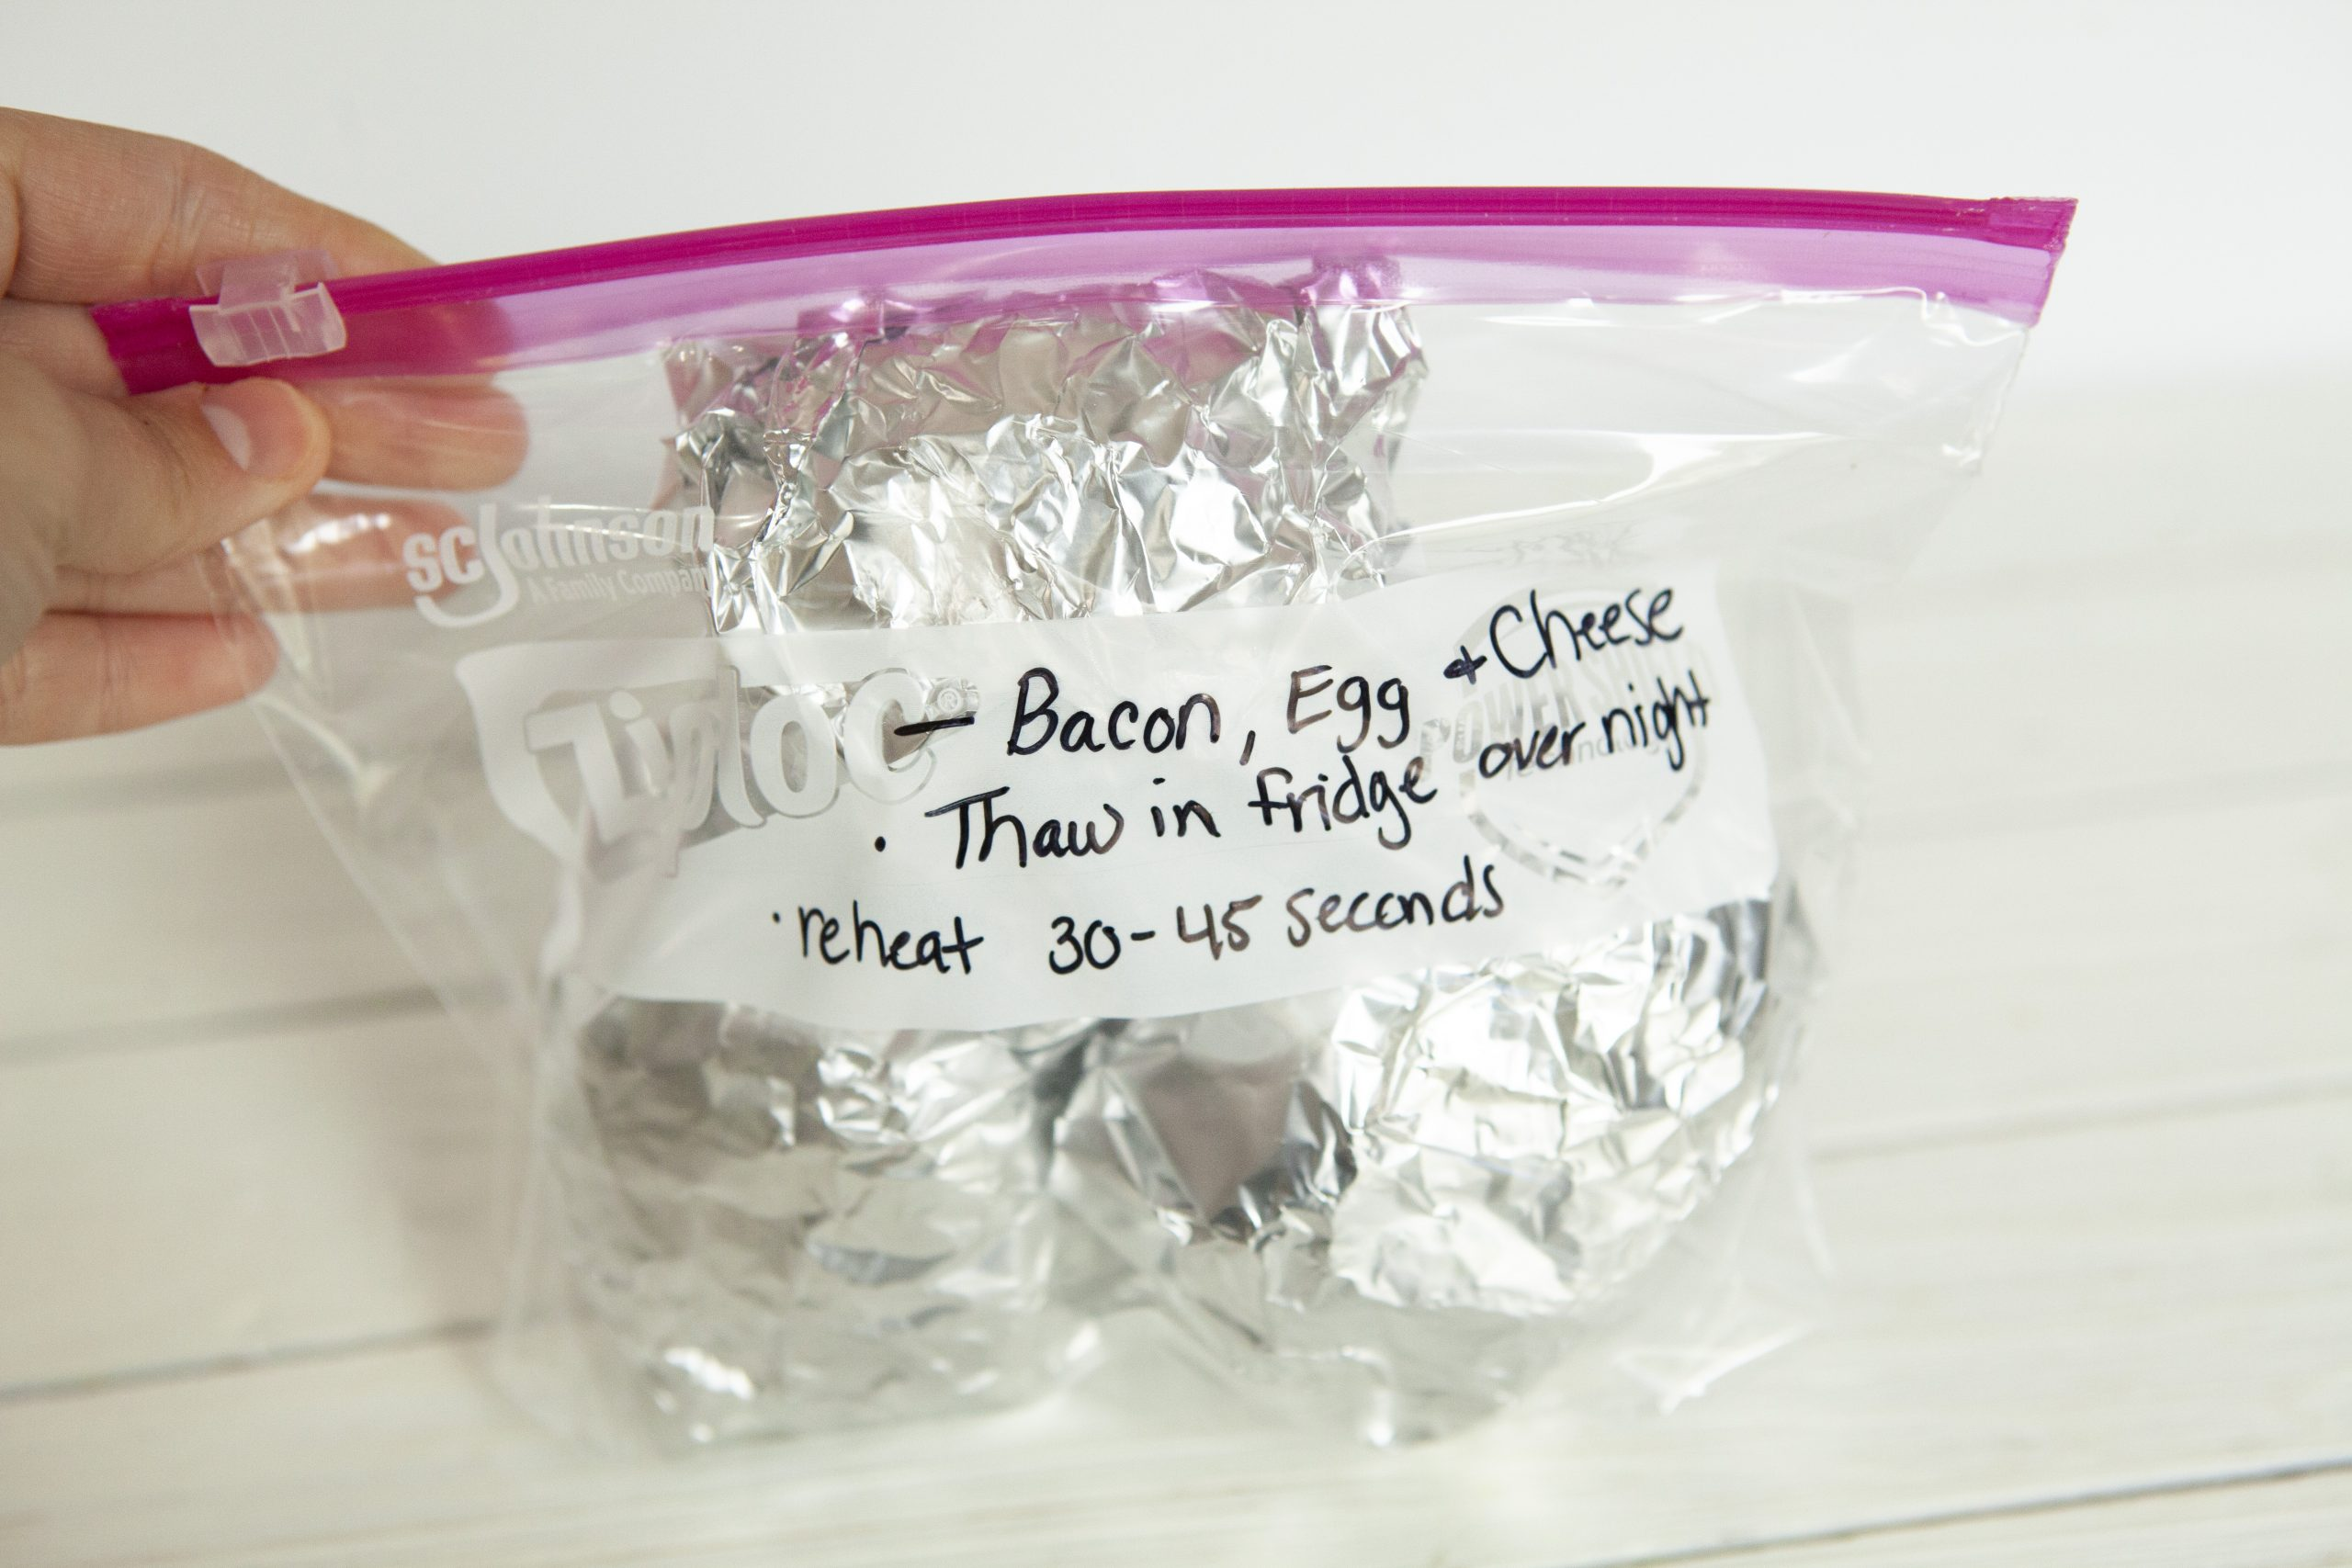 Weight Watchers Bacon, Egg and Cheese Biscuit in a freezer bag